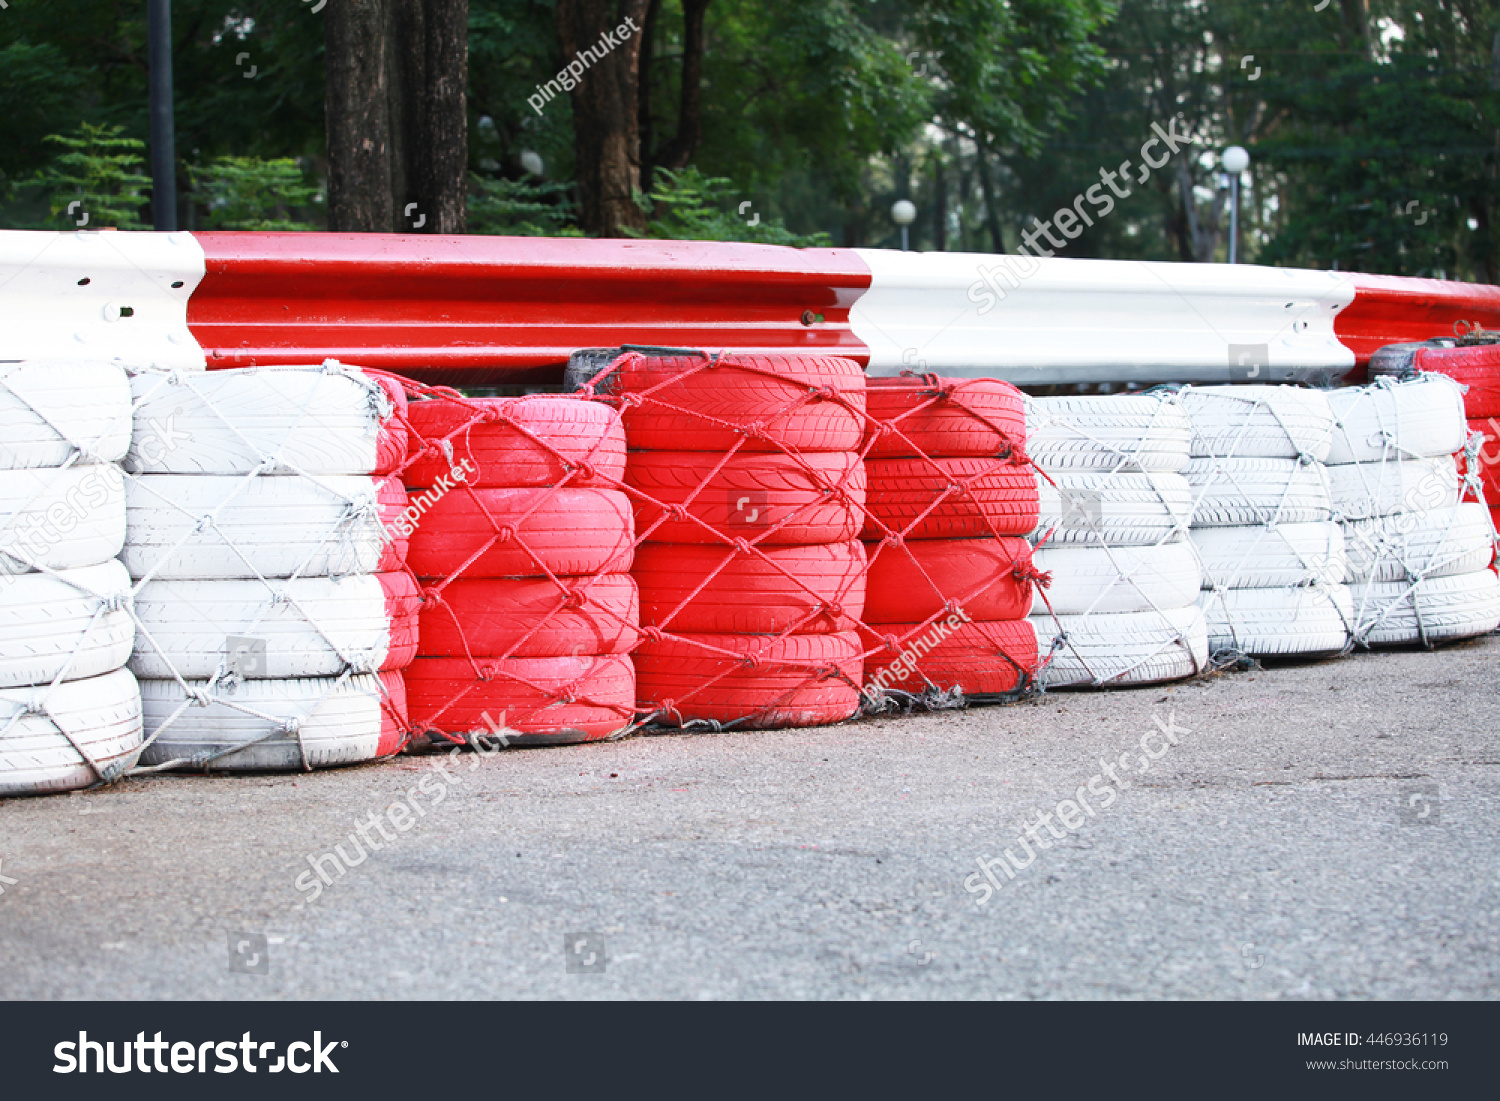 Tires Used Protection On Racing Track Stock Photo (Edit Now